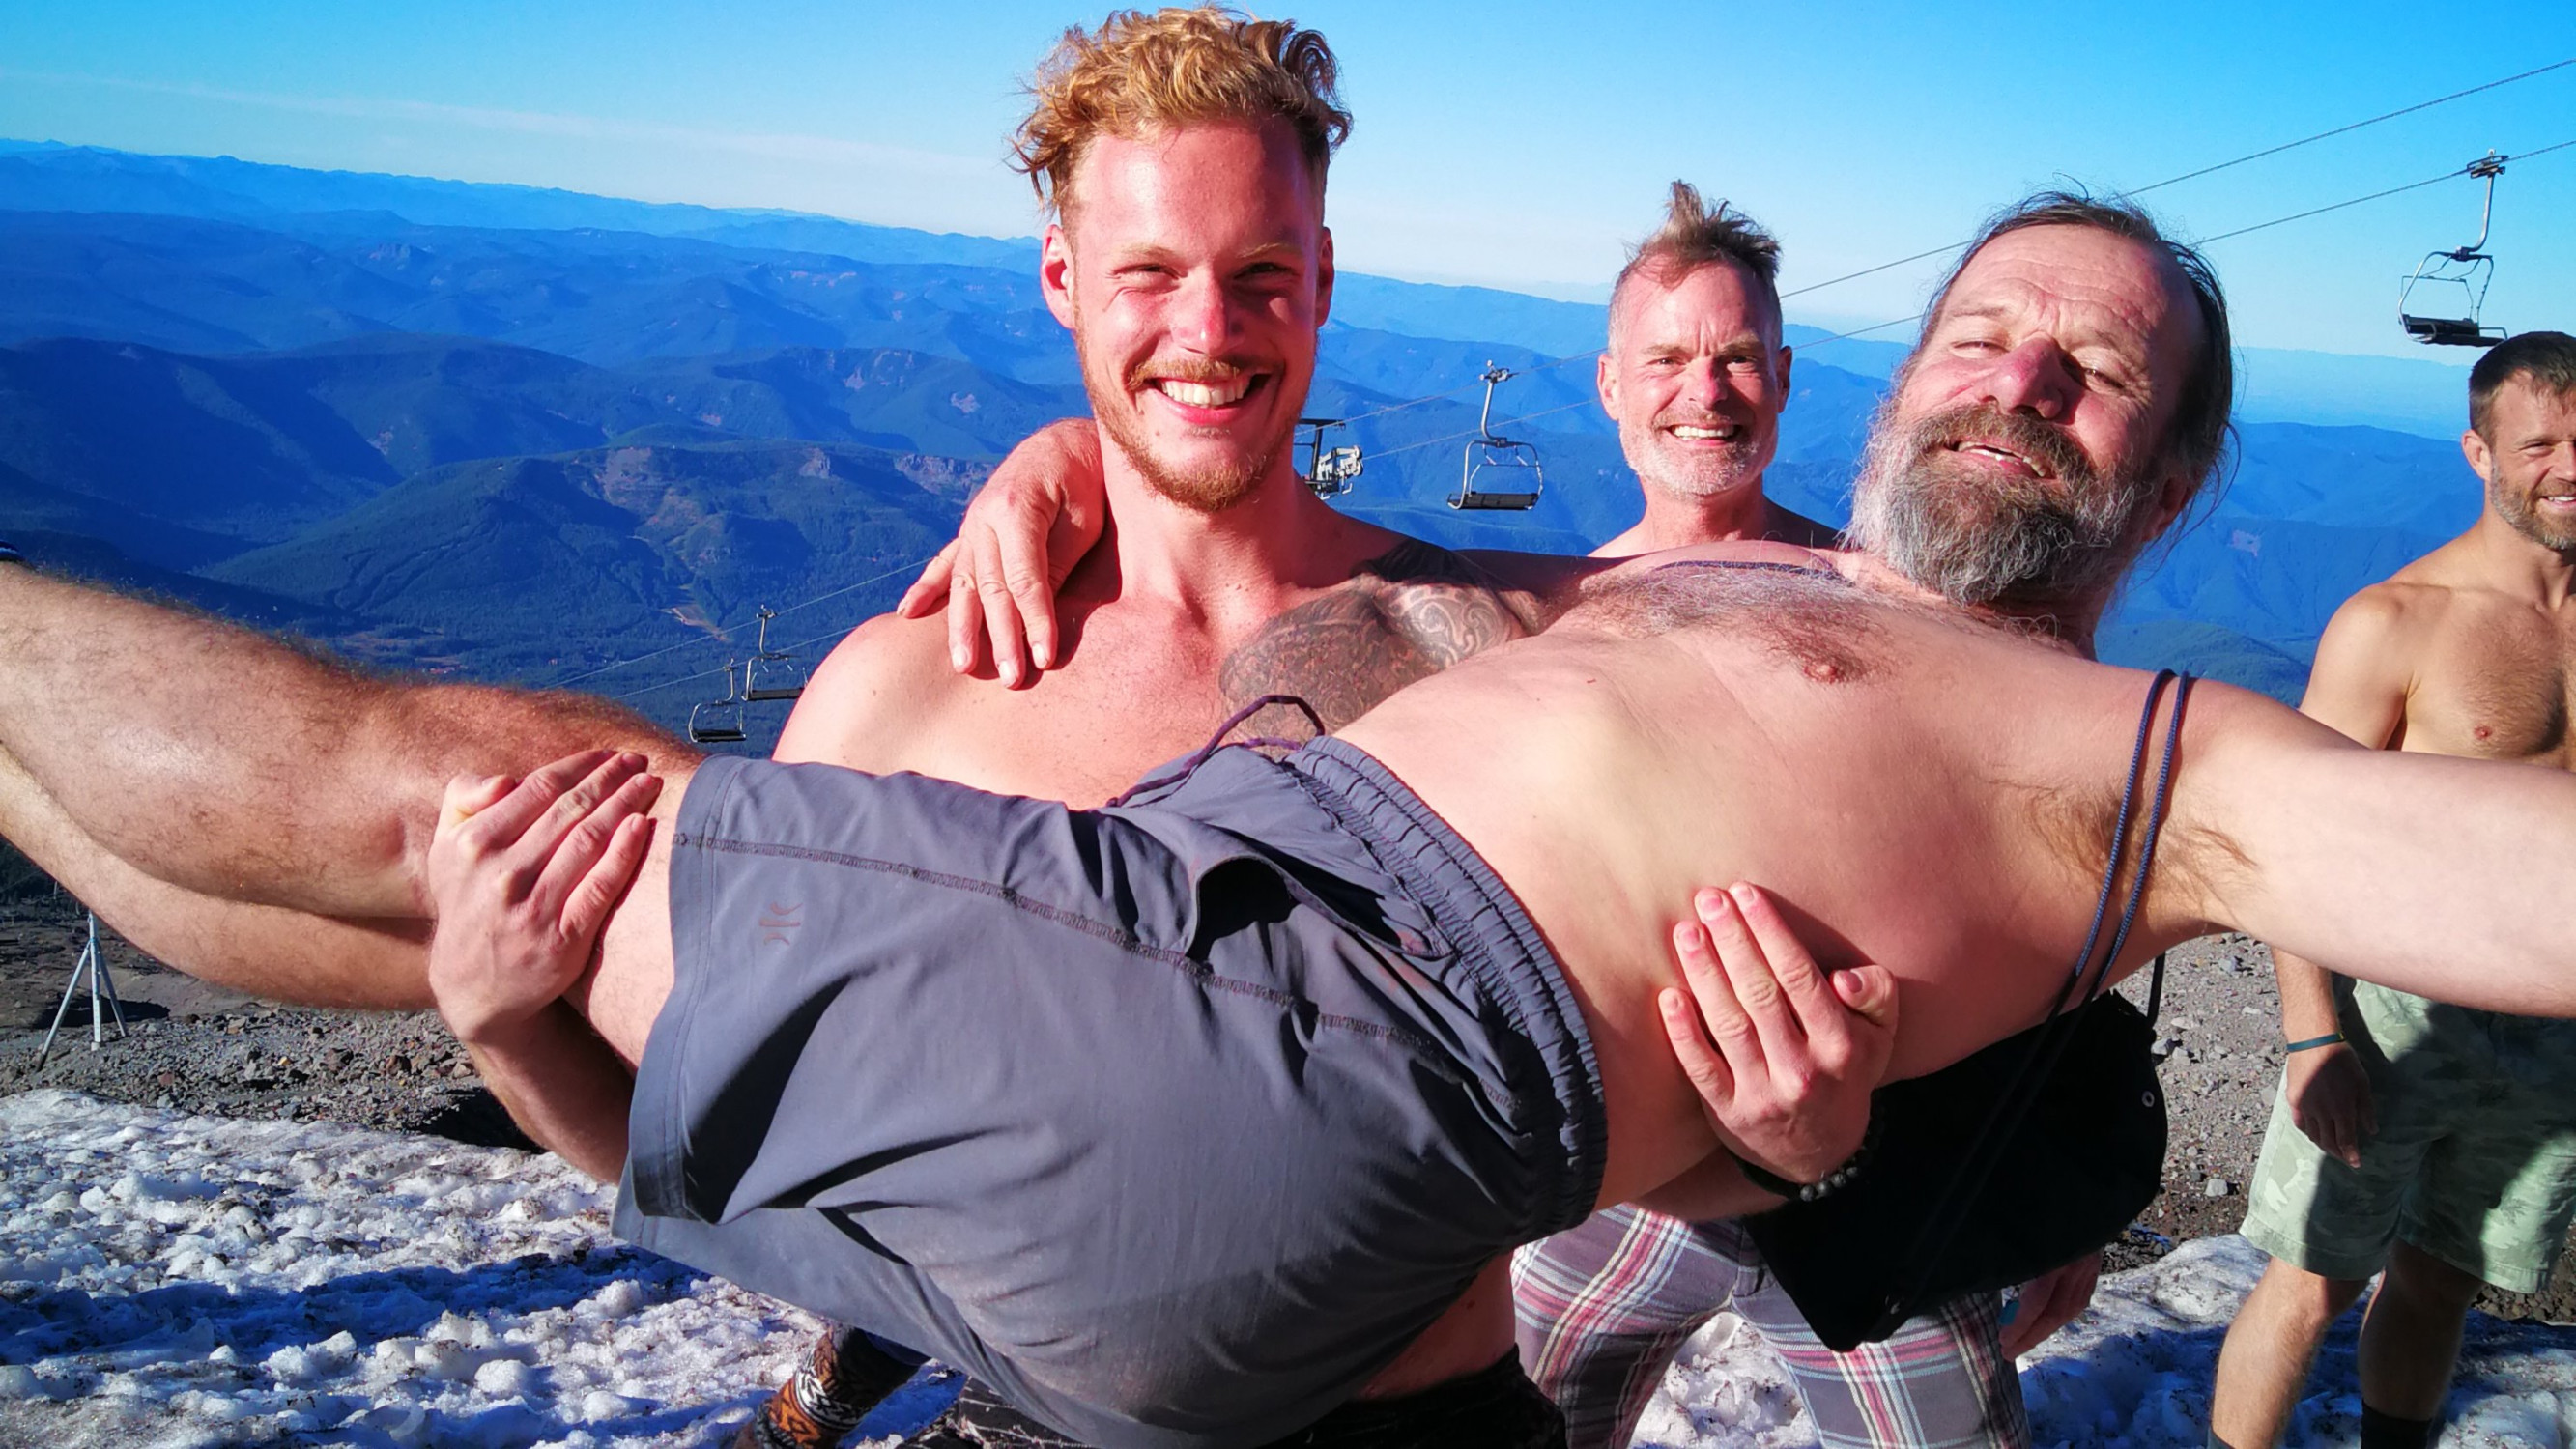 Image 3 of 10 - Experience the Wim Hof Method to get an impression of  at